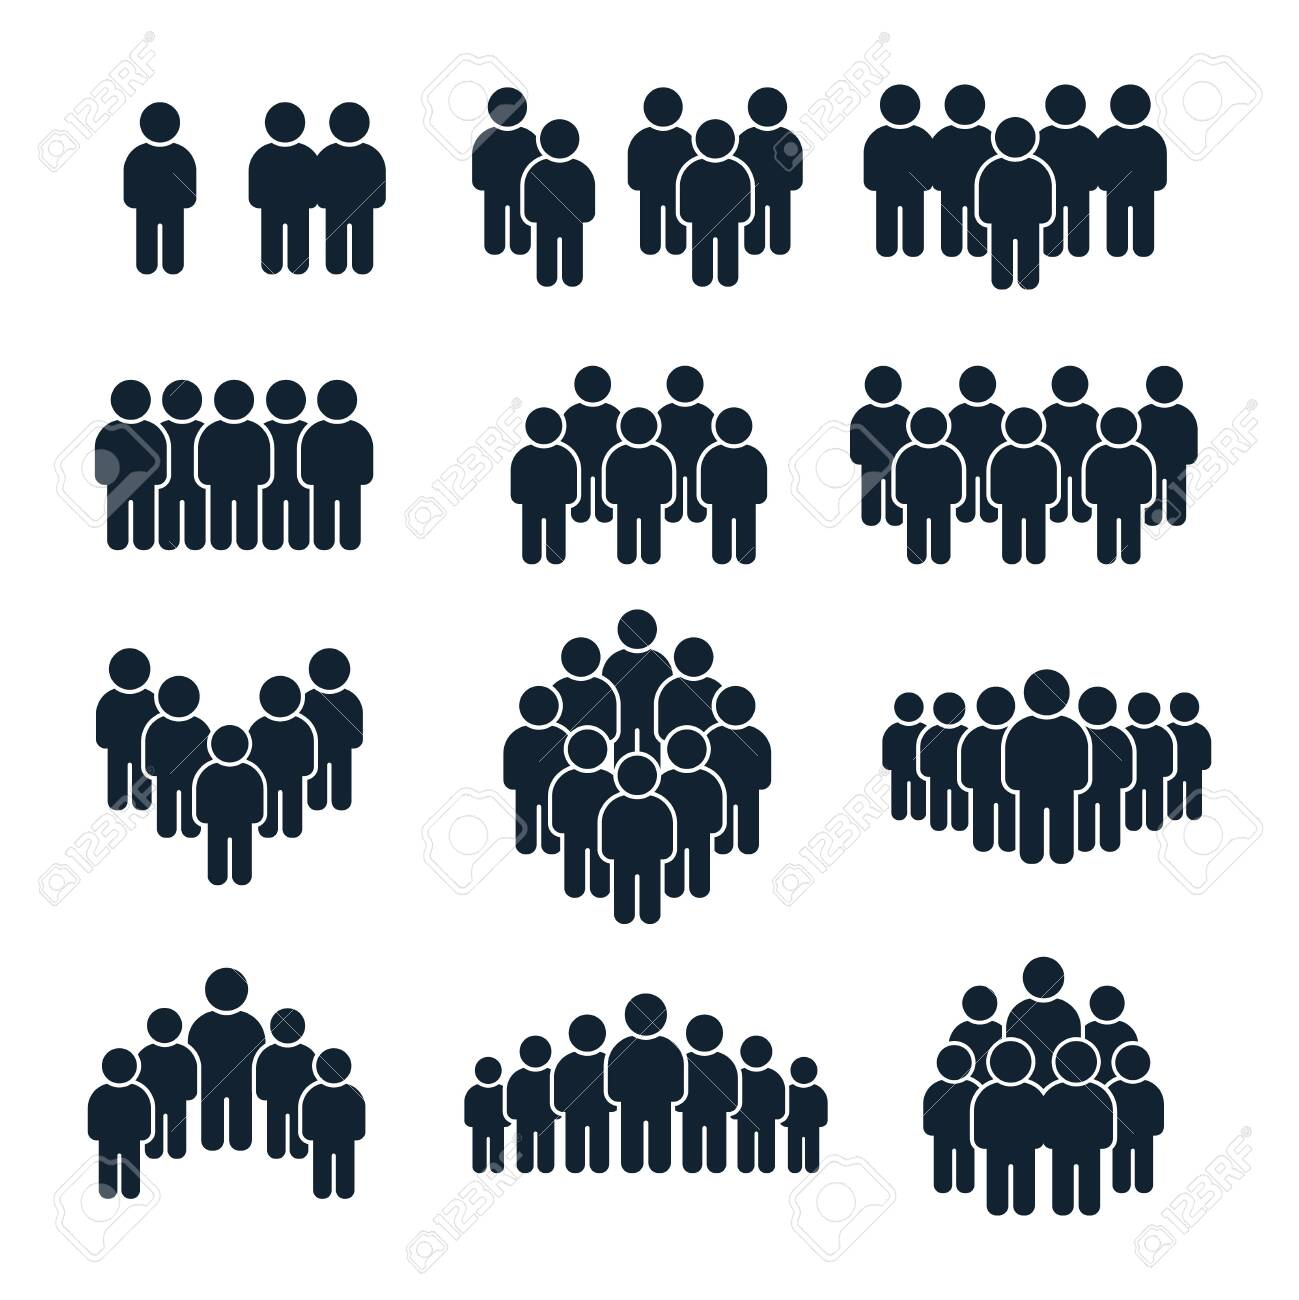 People group icon. Business person, team management and socializing persons silhouette icons. Leadership unity profile avatars, businessman community social site user isolated vector symbols set - 129433908